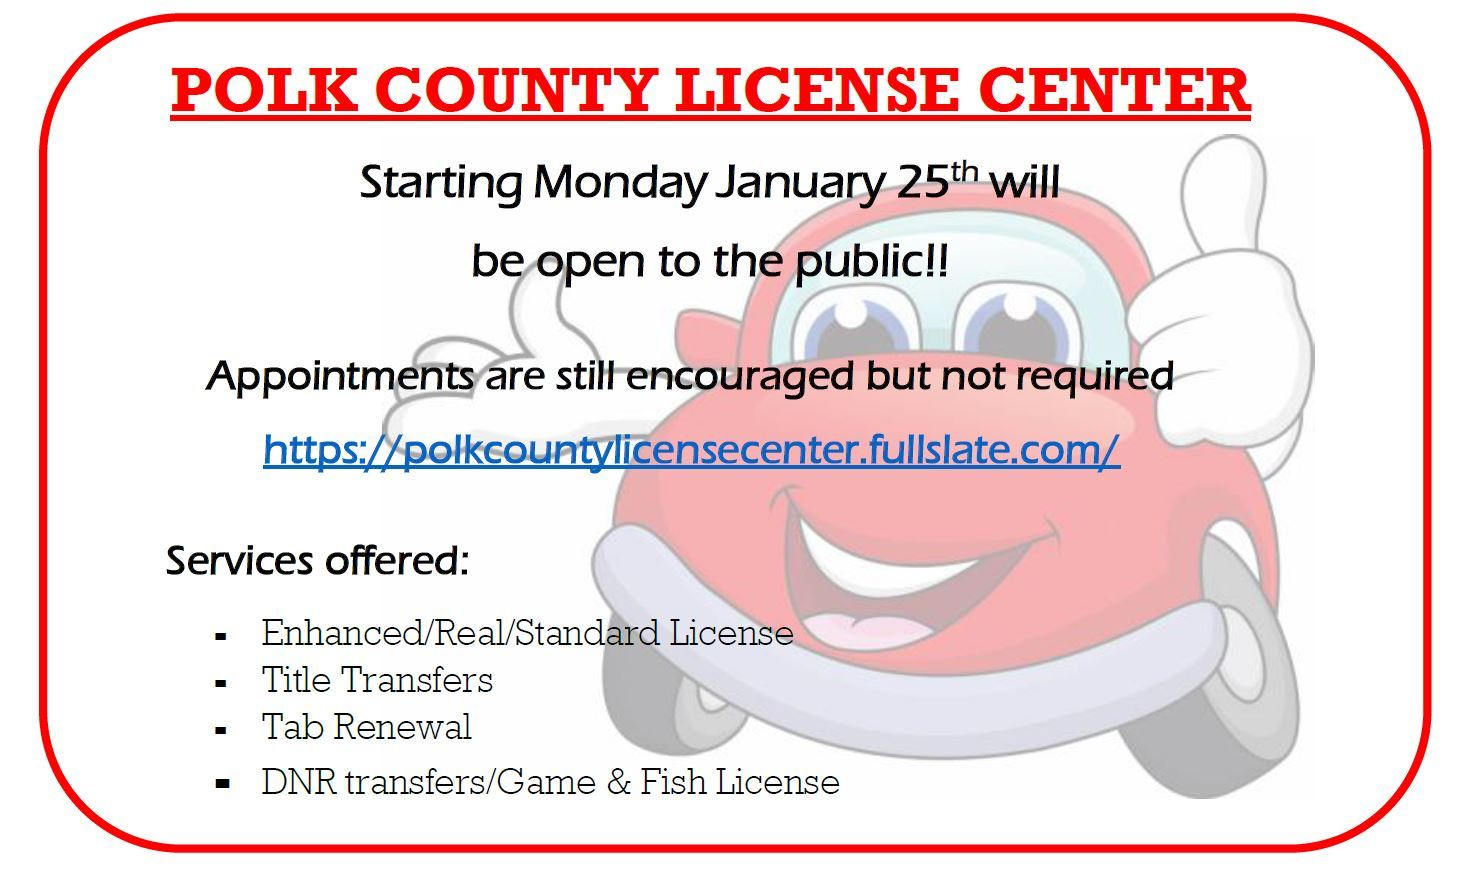 License Center Opening Ad Opens in new window